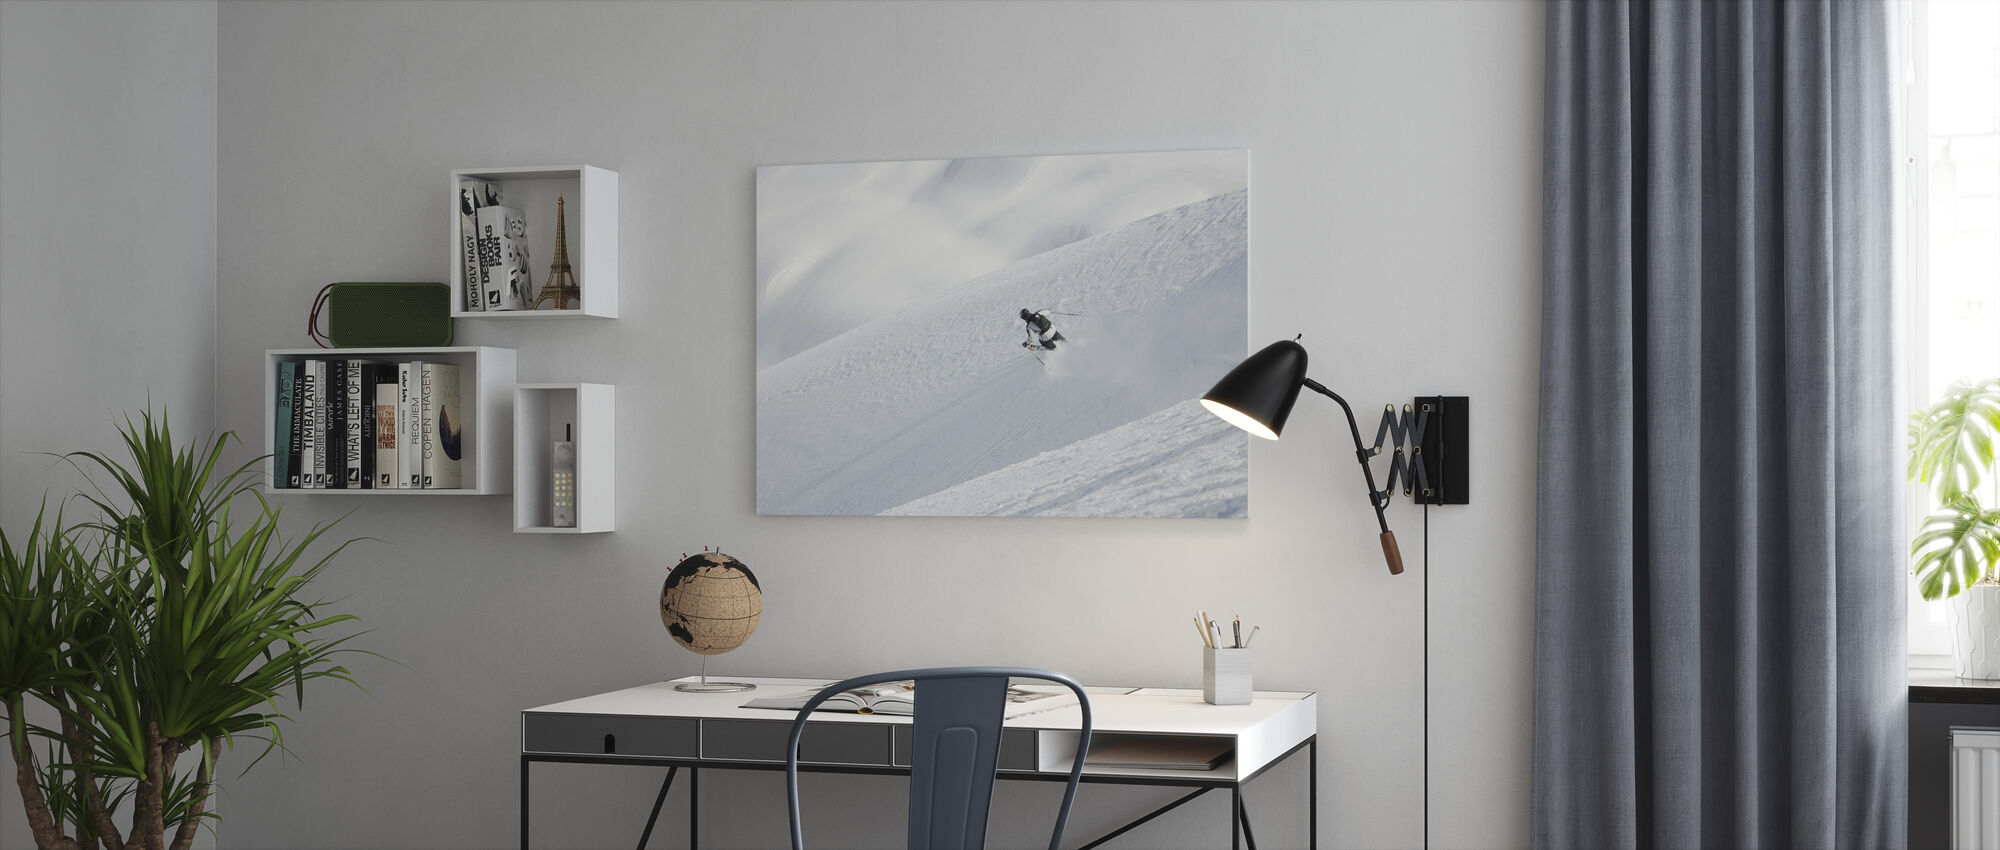 Off Piste Skiing in Chamonix, France, Europe - Canvas print - Office